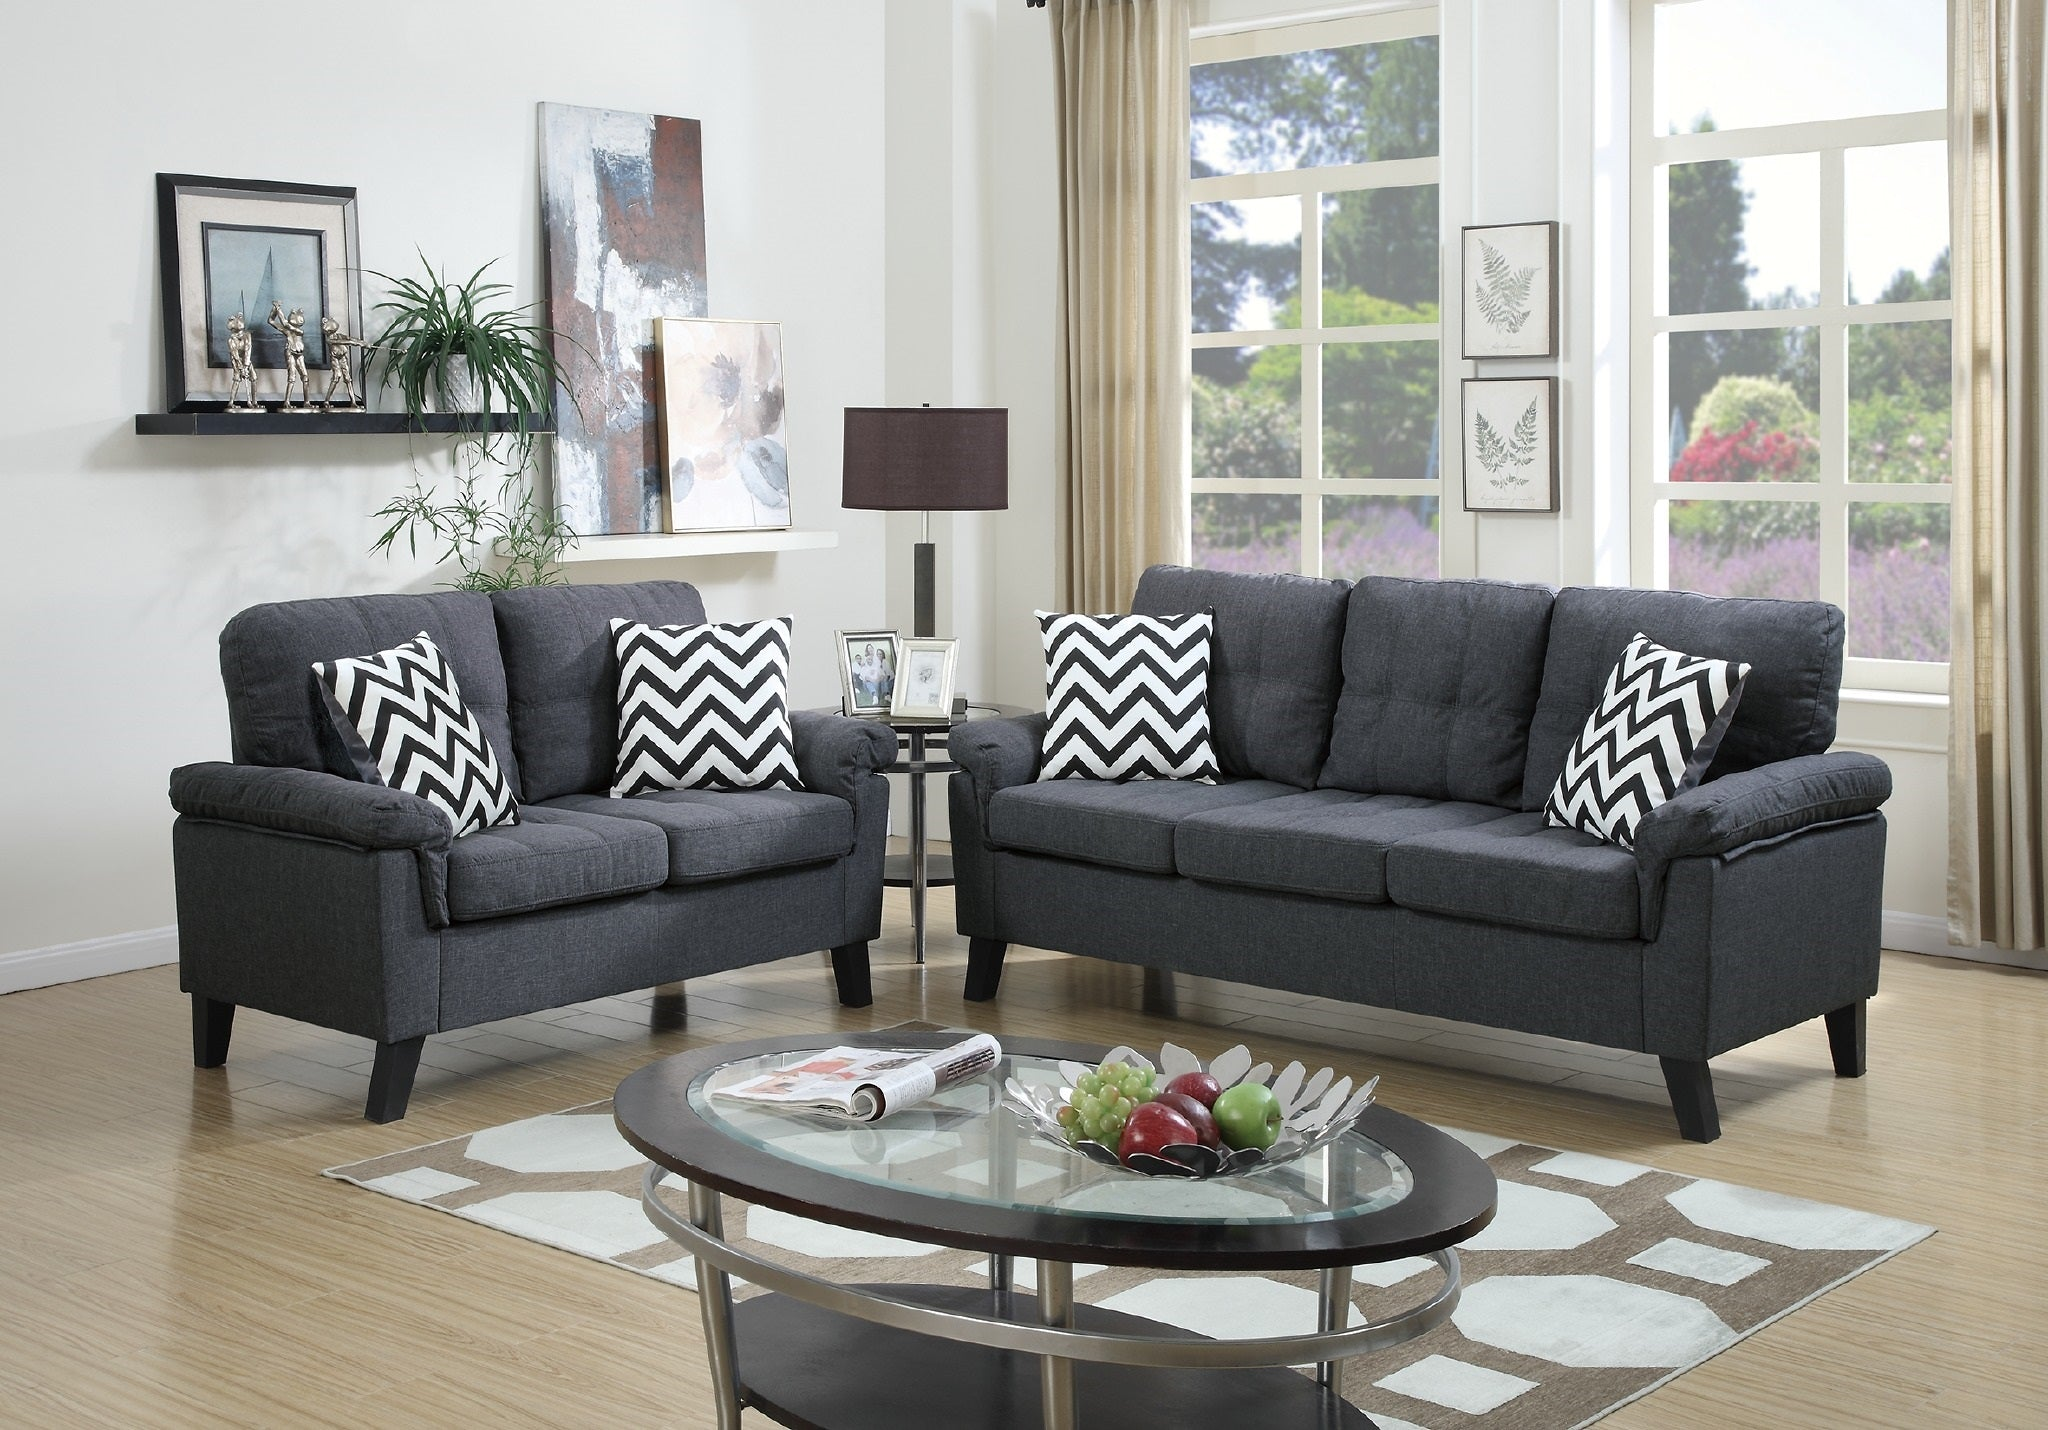 Outstanding F6905 Patrick Blue Grey Sofa And Loveseat La Discount Interior Design Ideas Clesiryabchikinfo